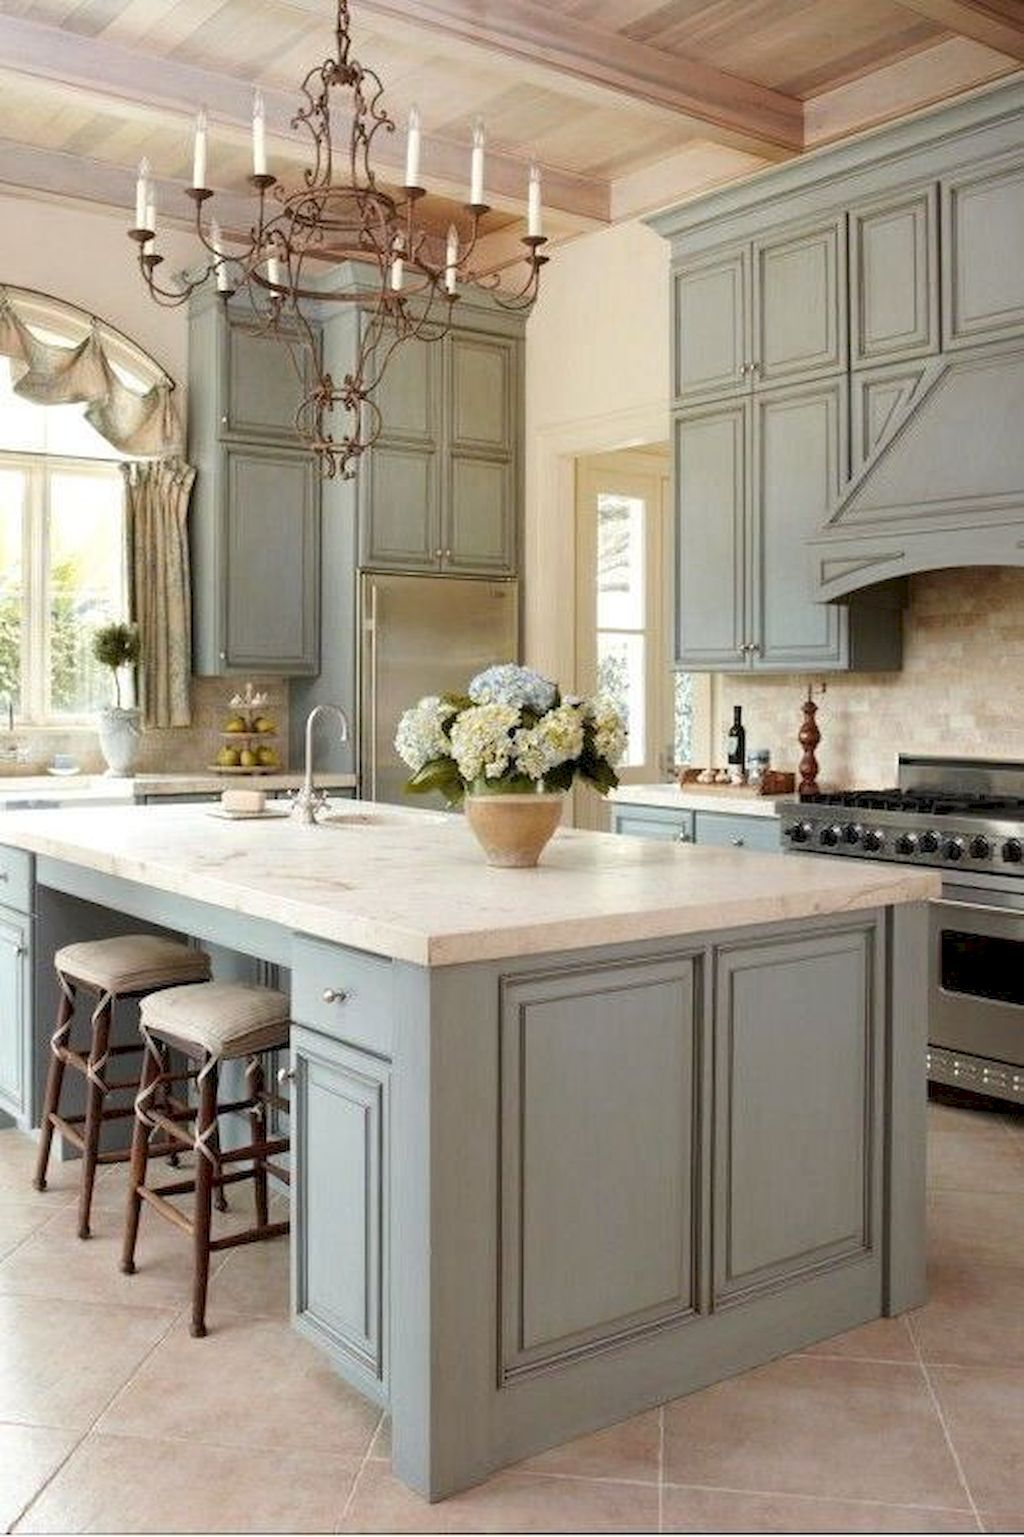 50 Elegant Farmhouse Kitchen Decor Ideas in 2020 | Country ...